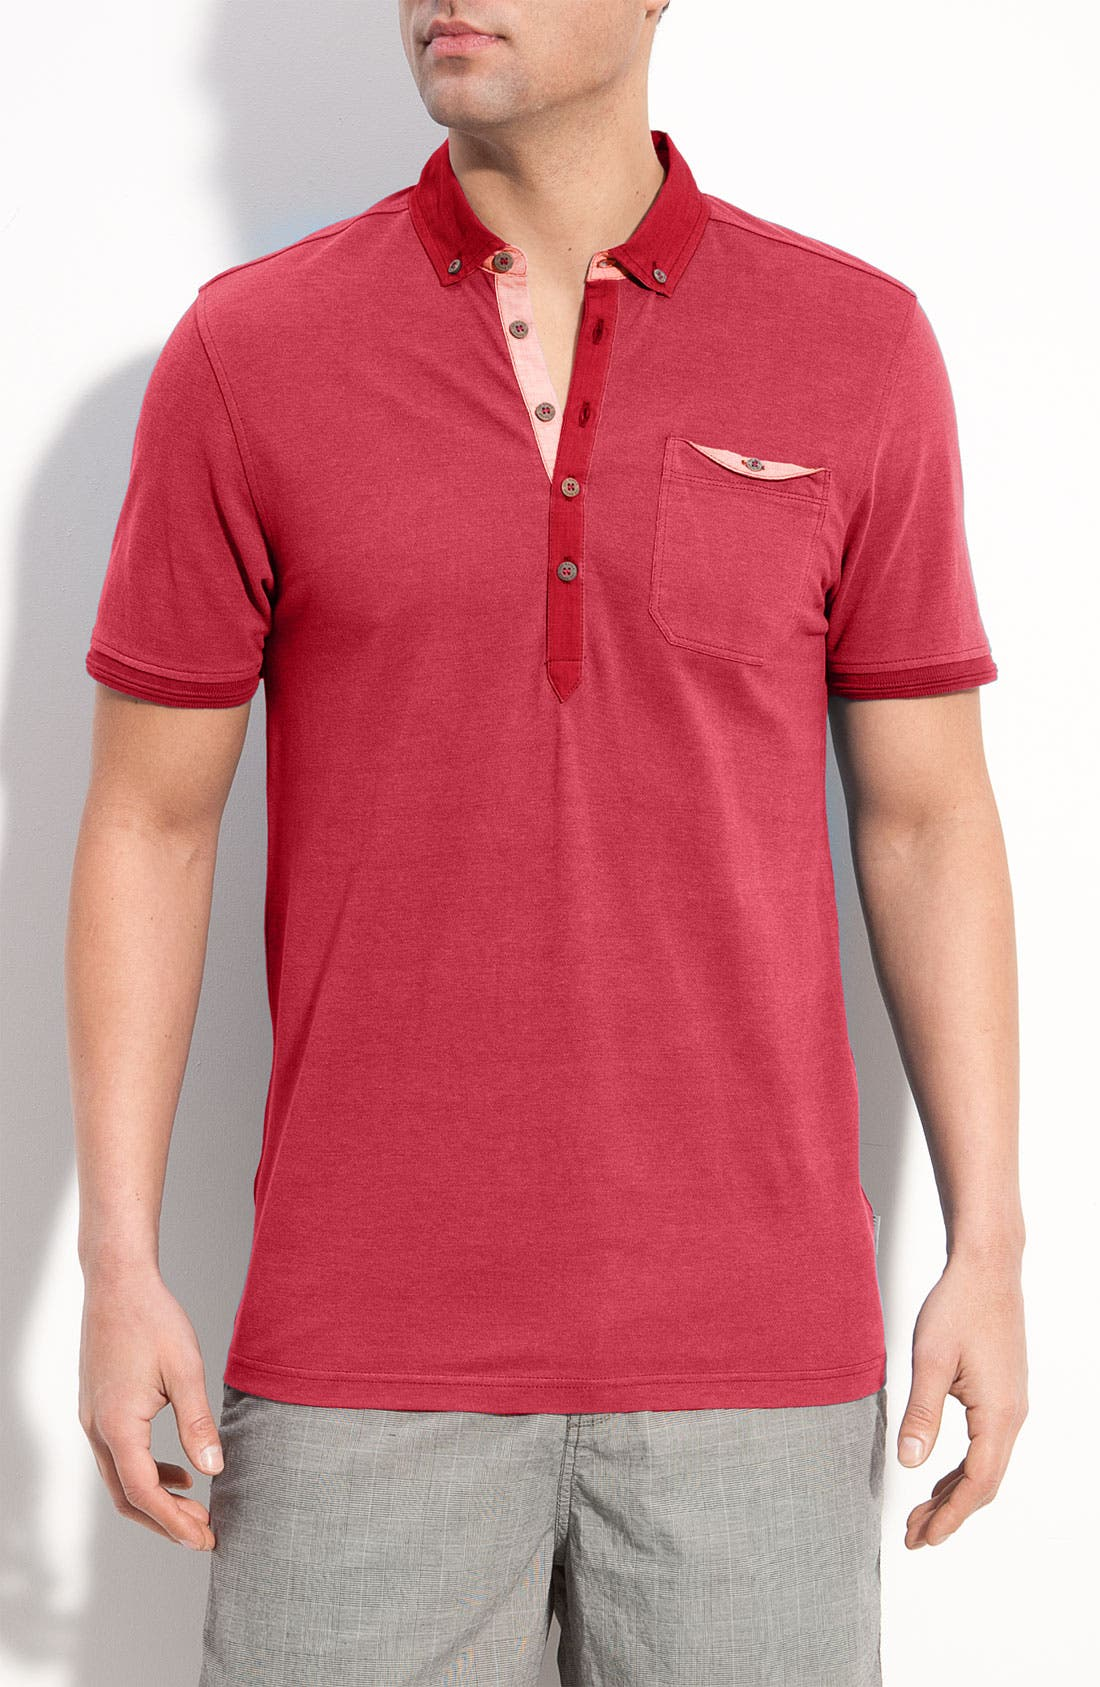 Alternate Image 1 Selected - Ted Baker London Trim Fit Polo